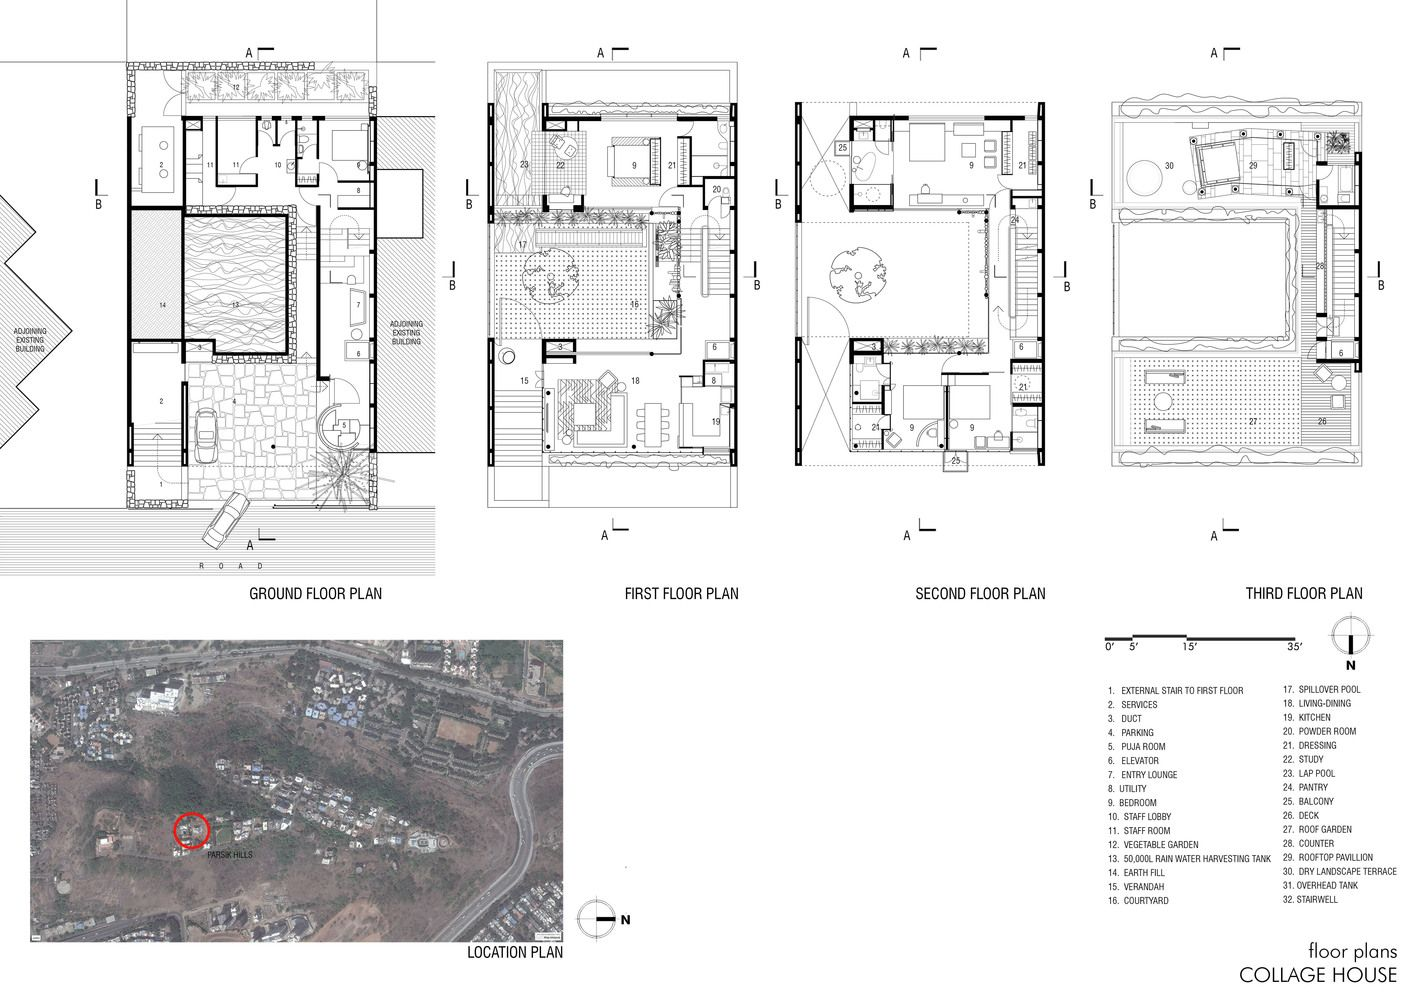 Gallery Of Collage House S Ps Architects 38 Location Plan Ground Floor Plan How To Plan